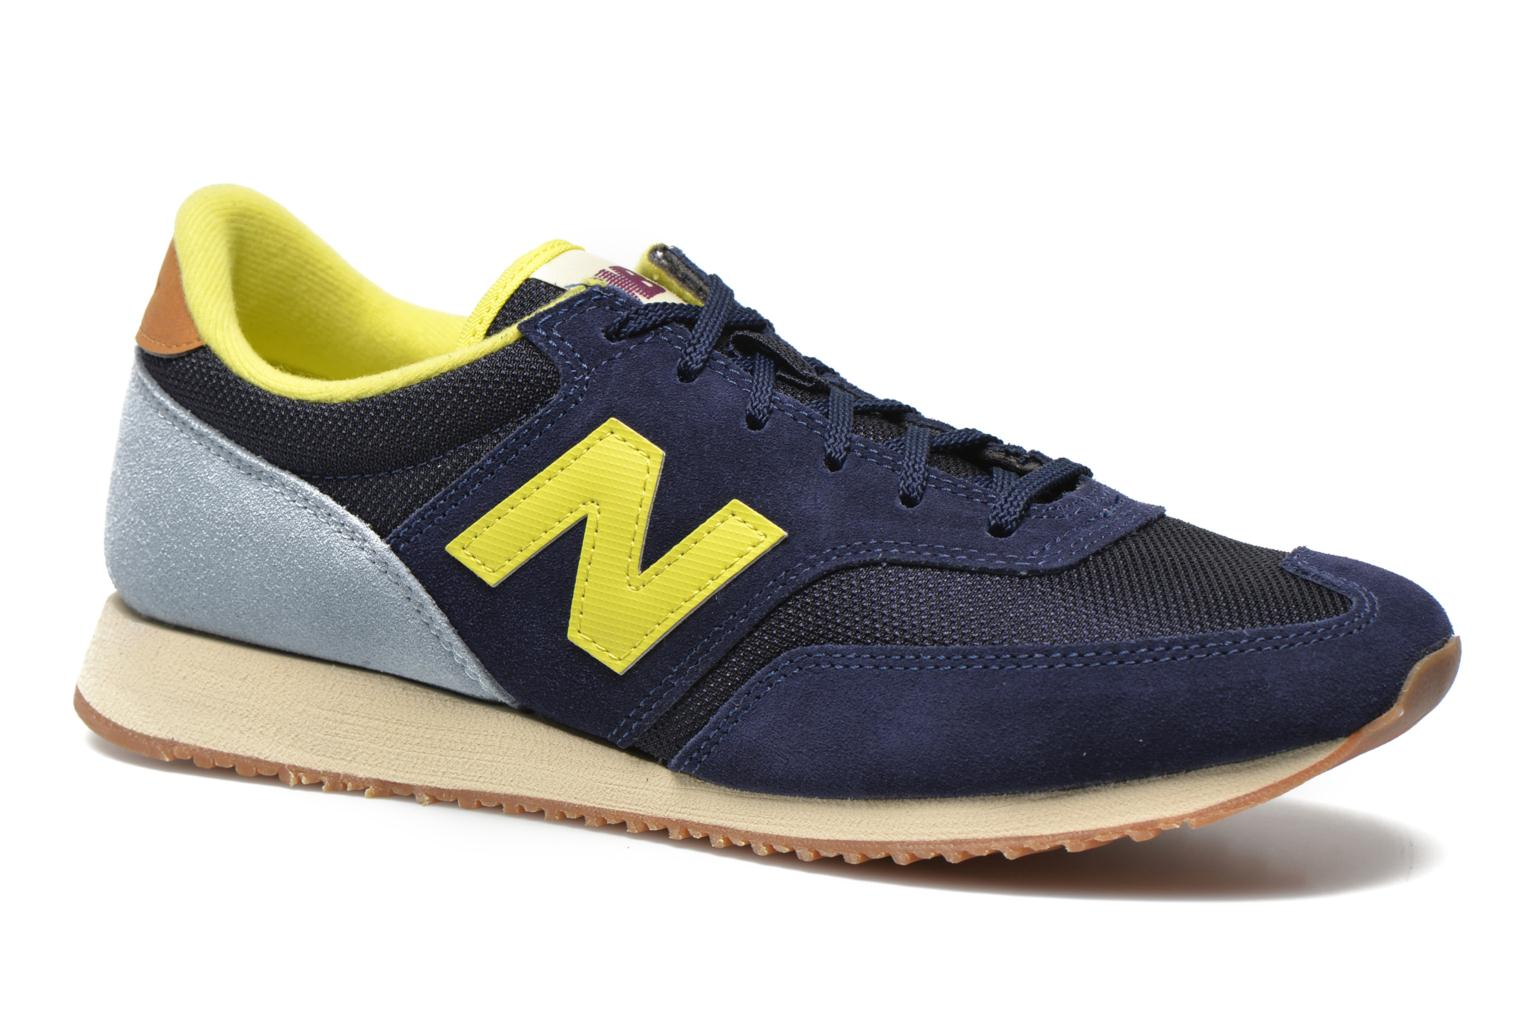 Sneakers CW620 M by New Balance